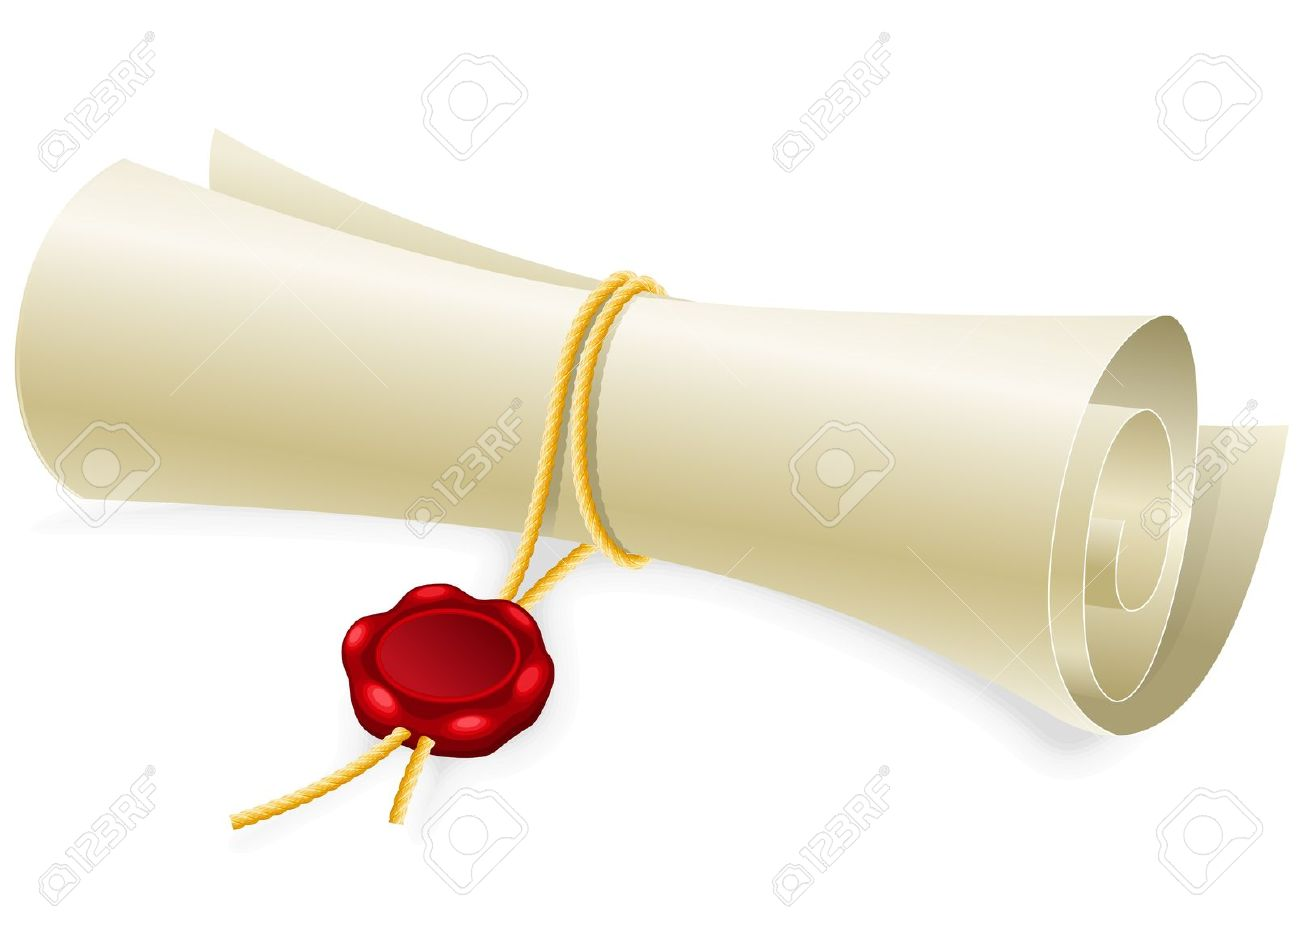 Scroll Paper With Seal Of Sealing Wax Made Without Gradient Mesh.